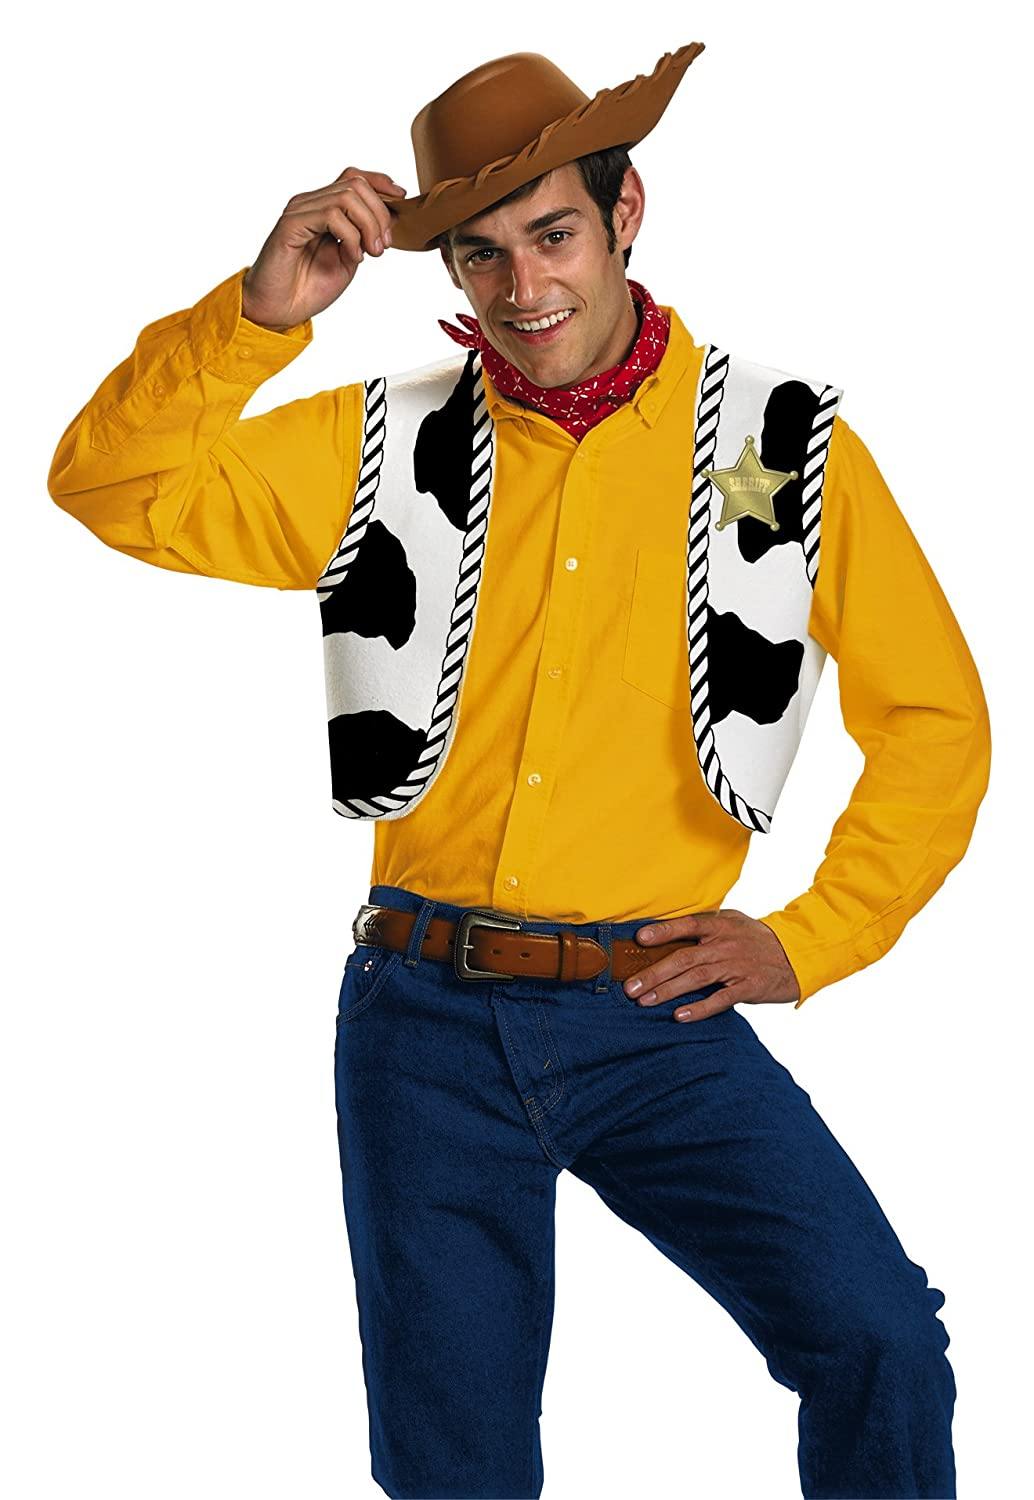 Disguise Men's Disney Pixar Toy Story and Beyond Woody Adult Costume Kit Yellow/Black/White/Brown One Size Disguise Costumes 23433